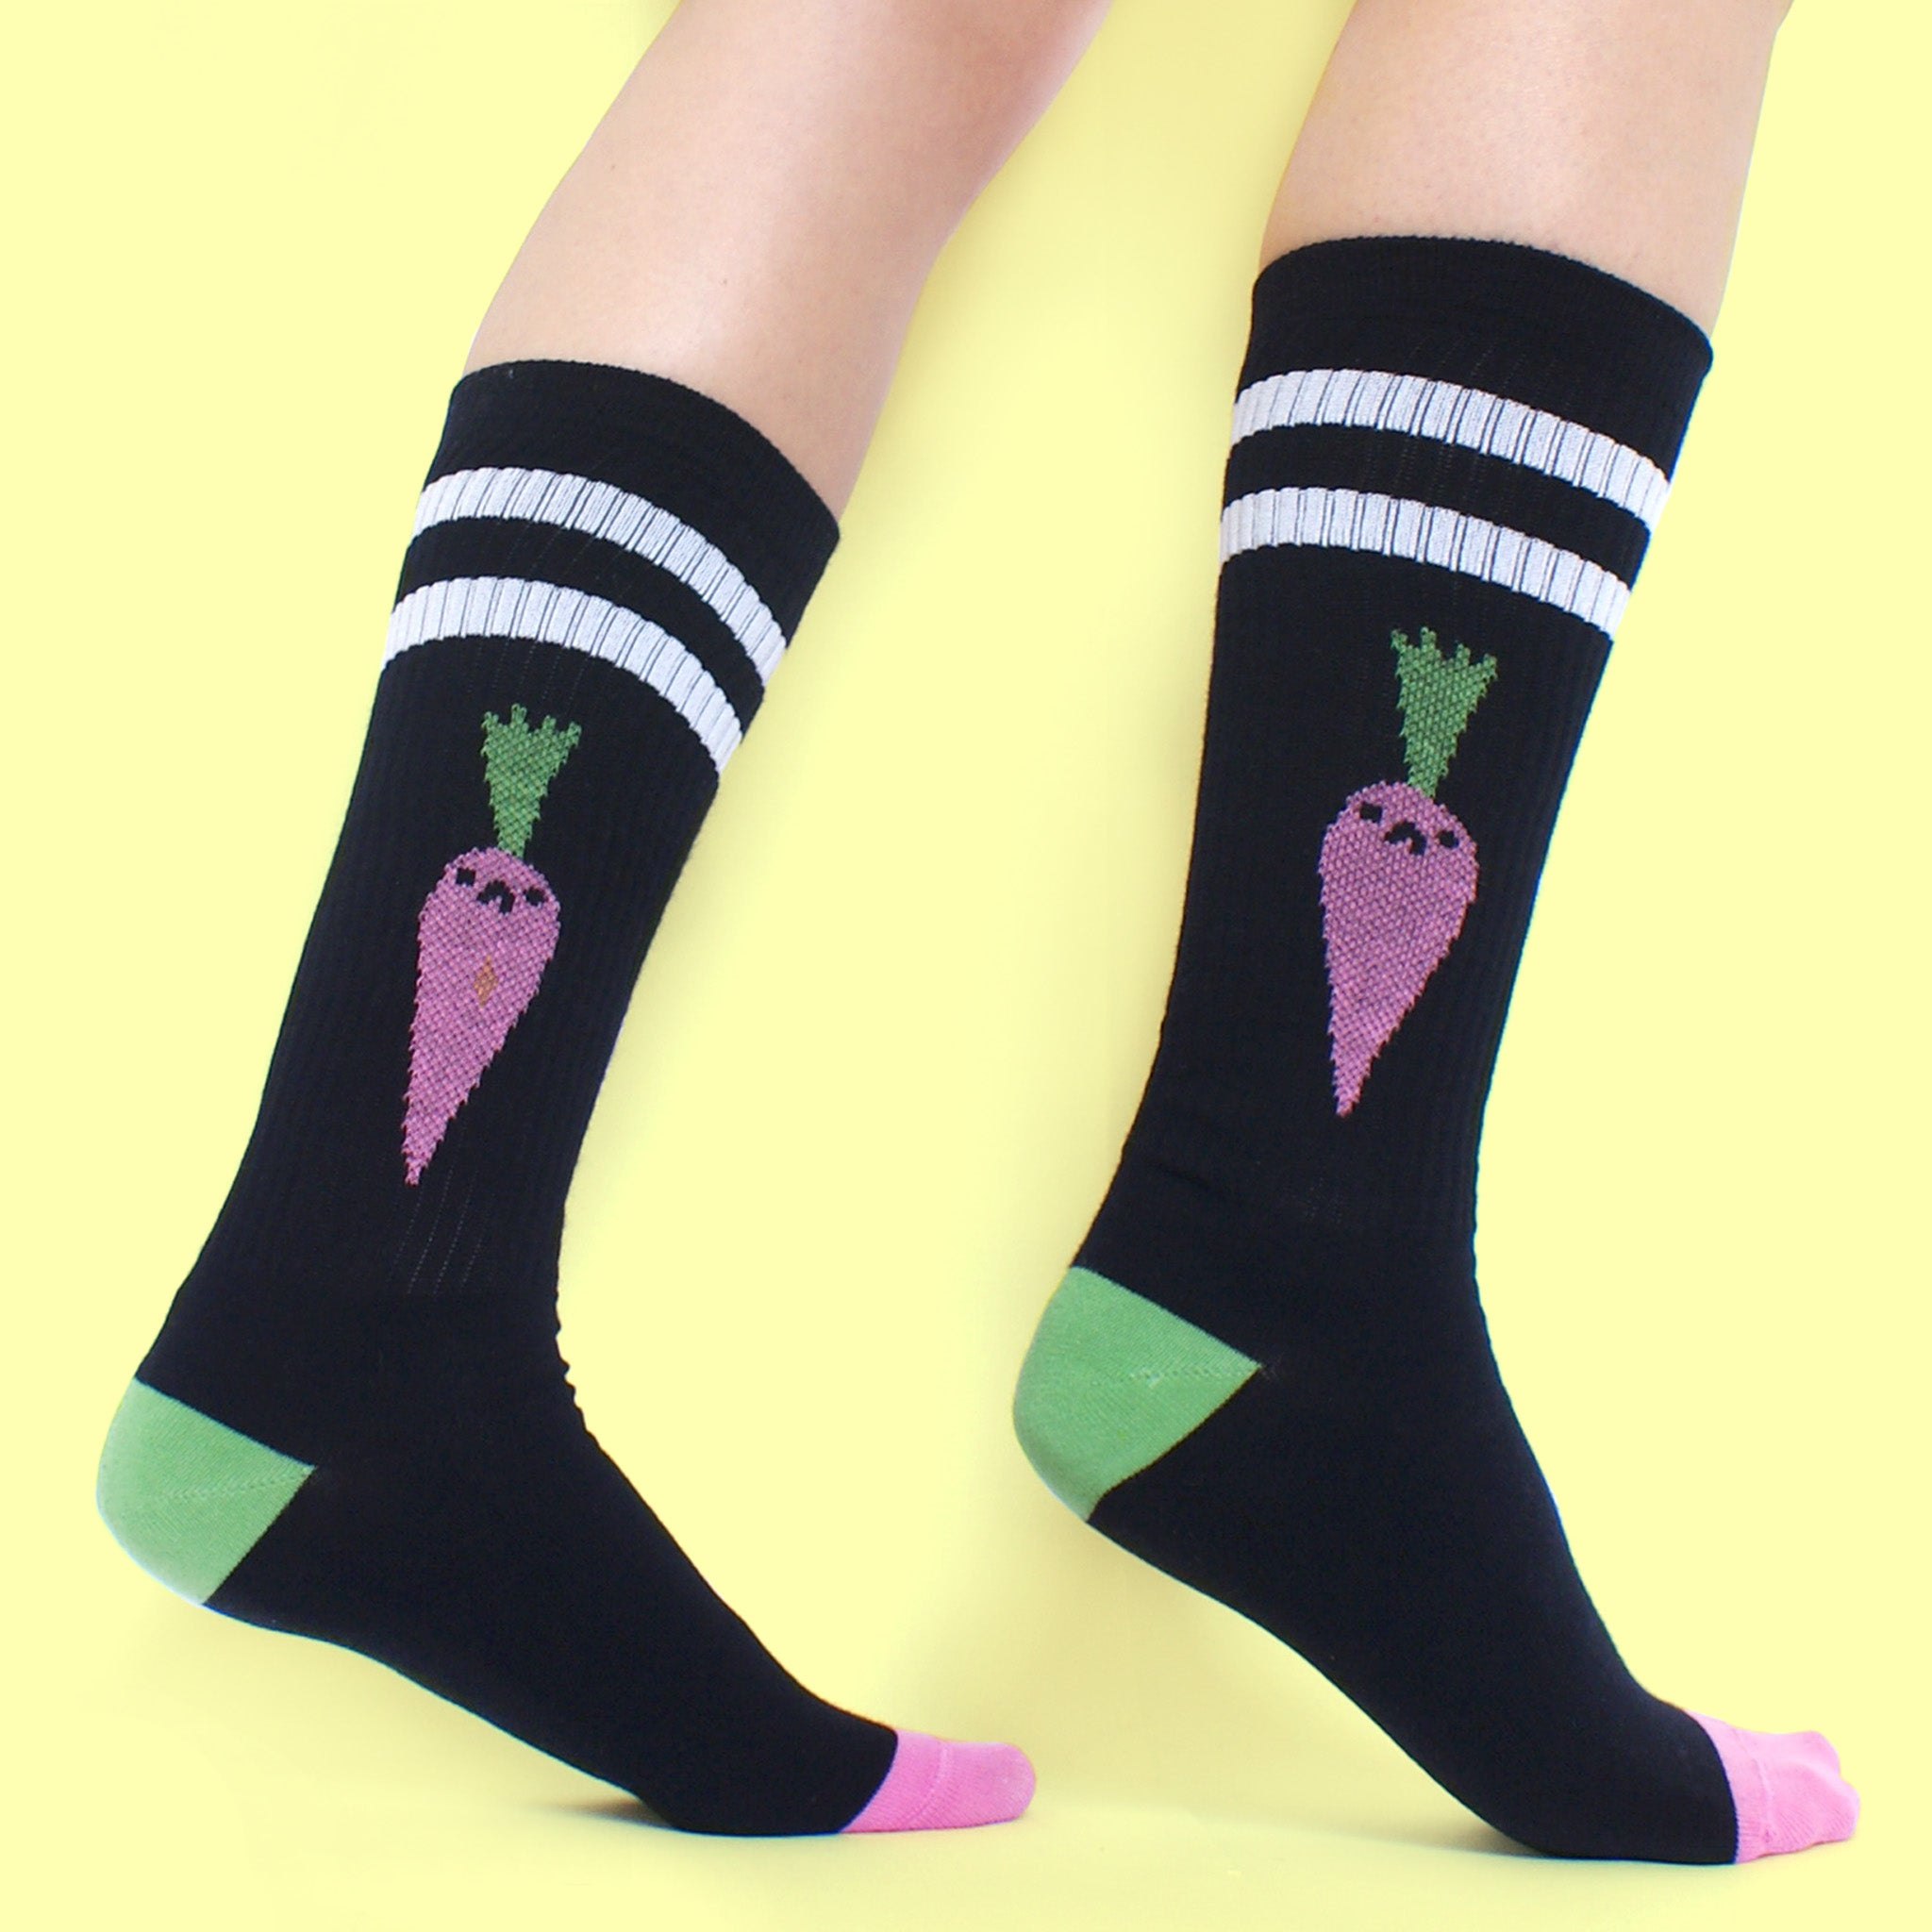 BLACK Bad Carrot Tube Socks (sale) by illustrator Eva Stalinski